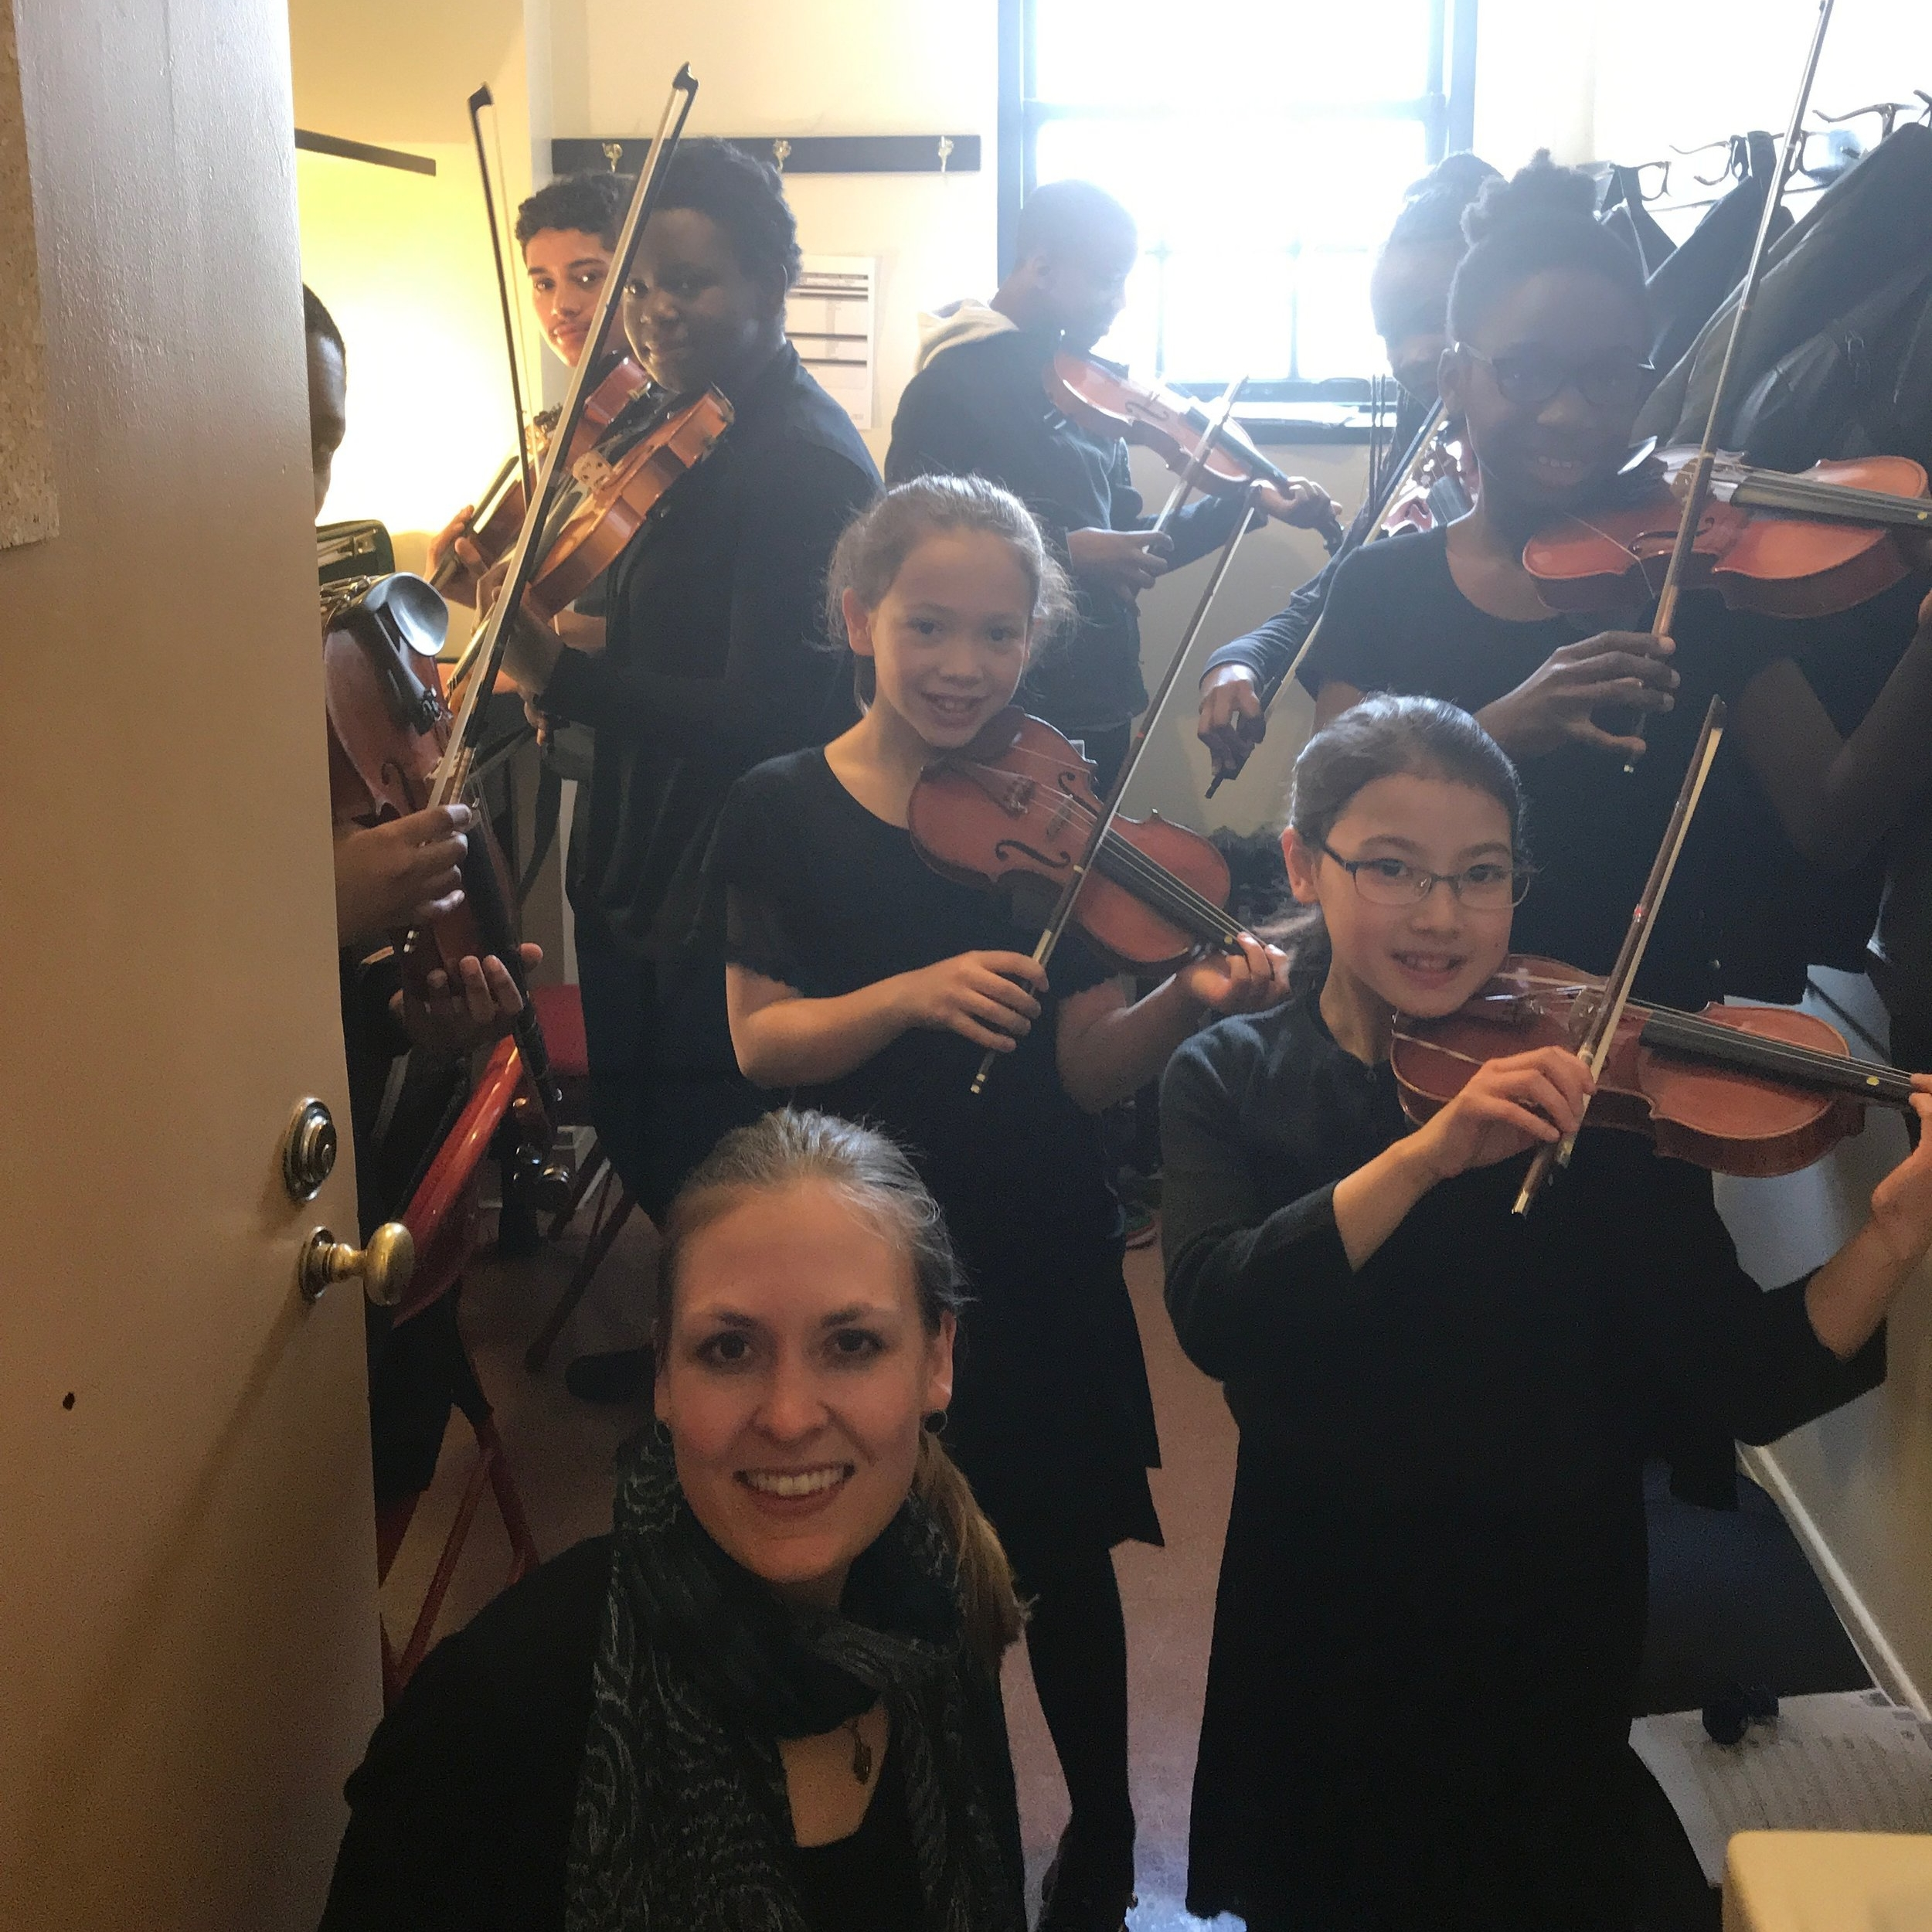 Ms. Leffingwell with some of her former STA students and other young musicians from the Greater Hartford Area in the backstage area just before performing at the Bushnell Performing Arts Center with the Hartford Symphony Orchestra.